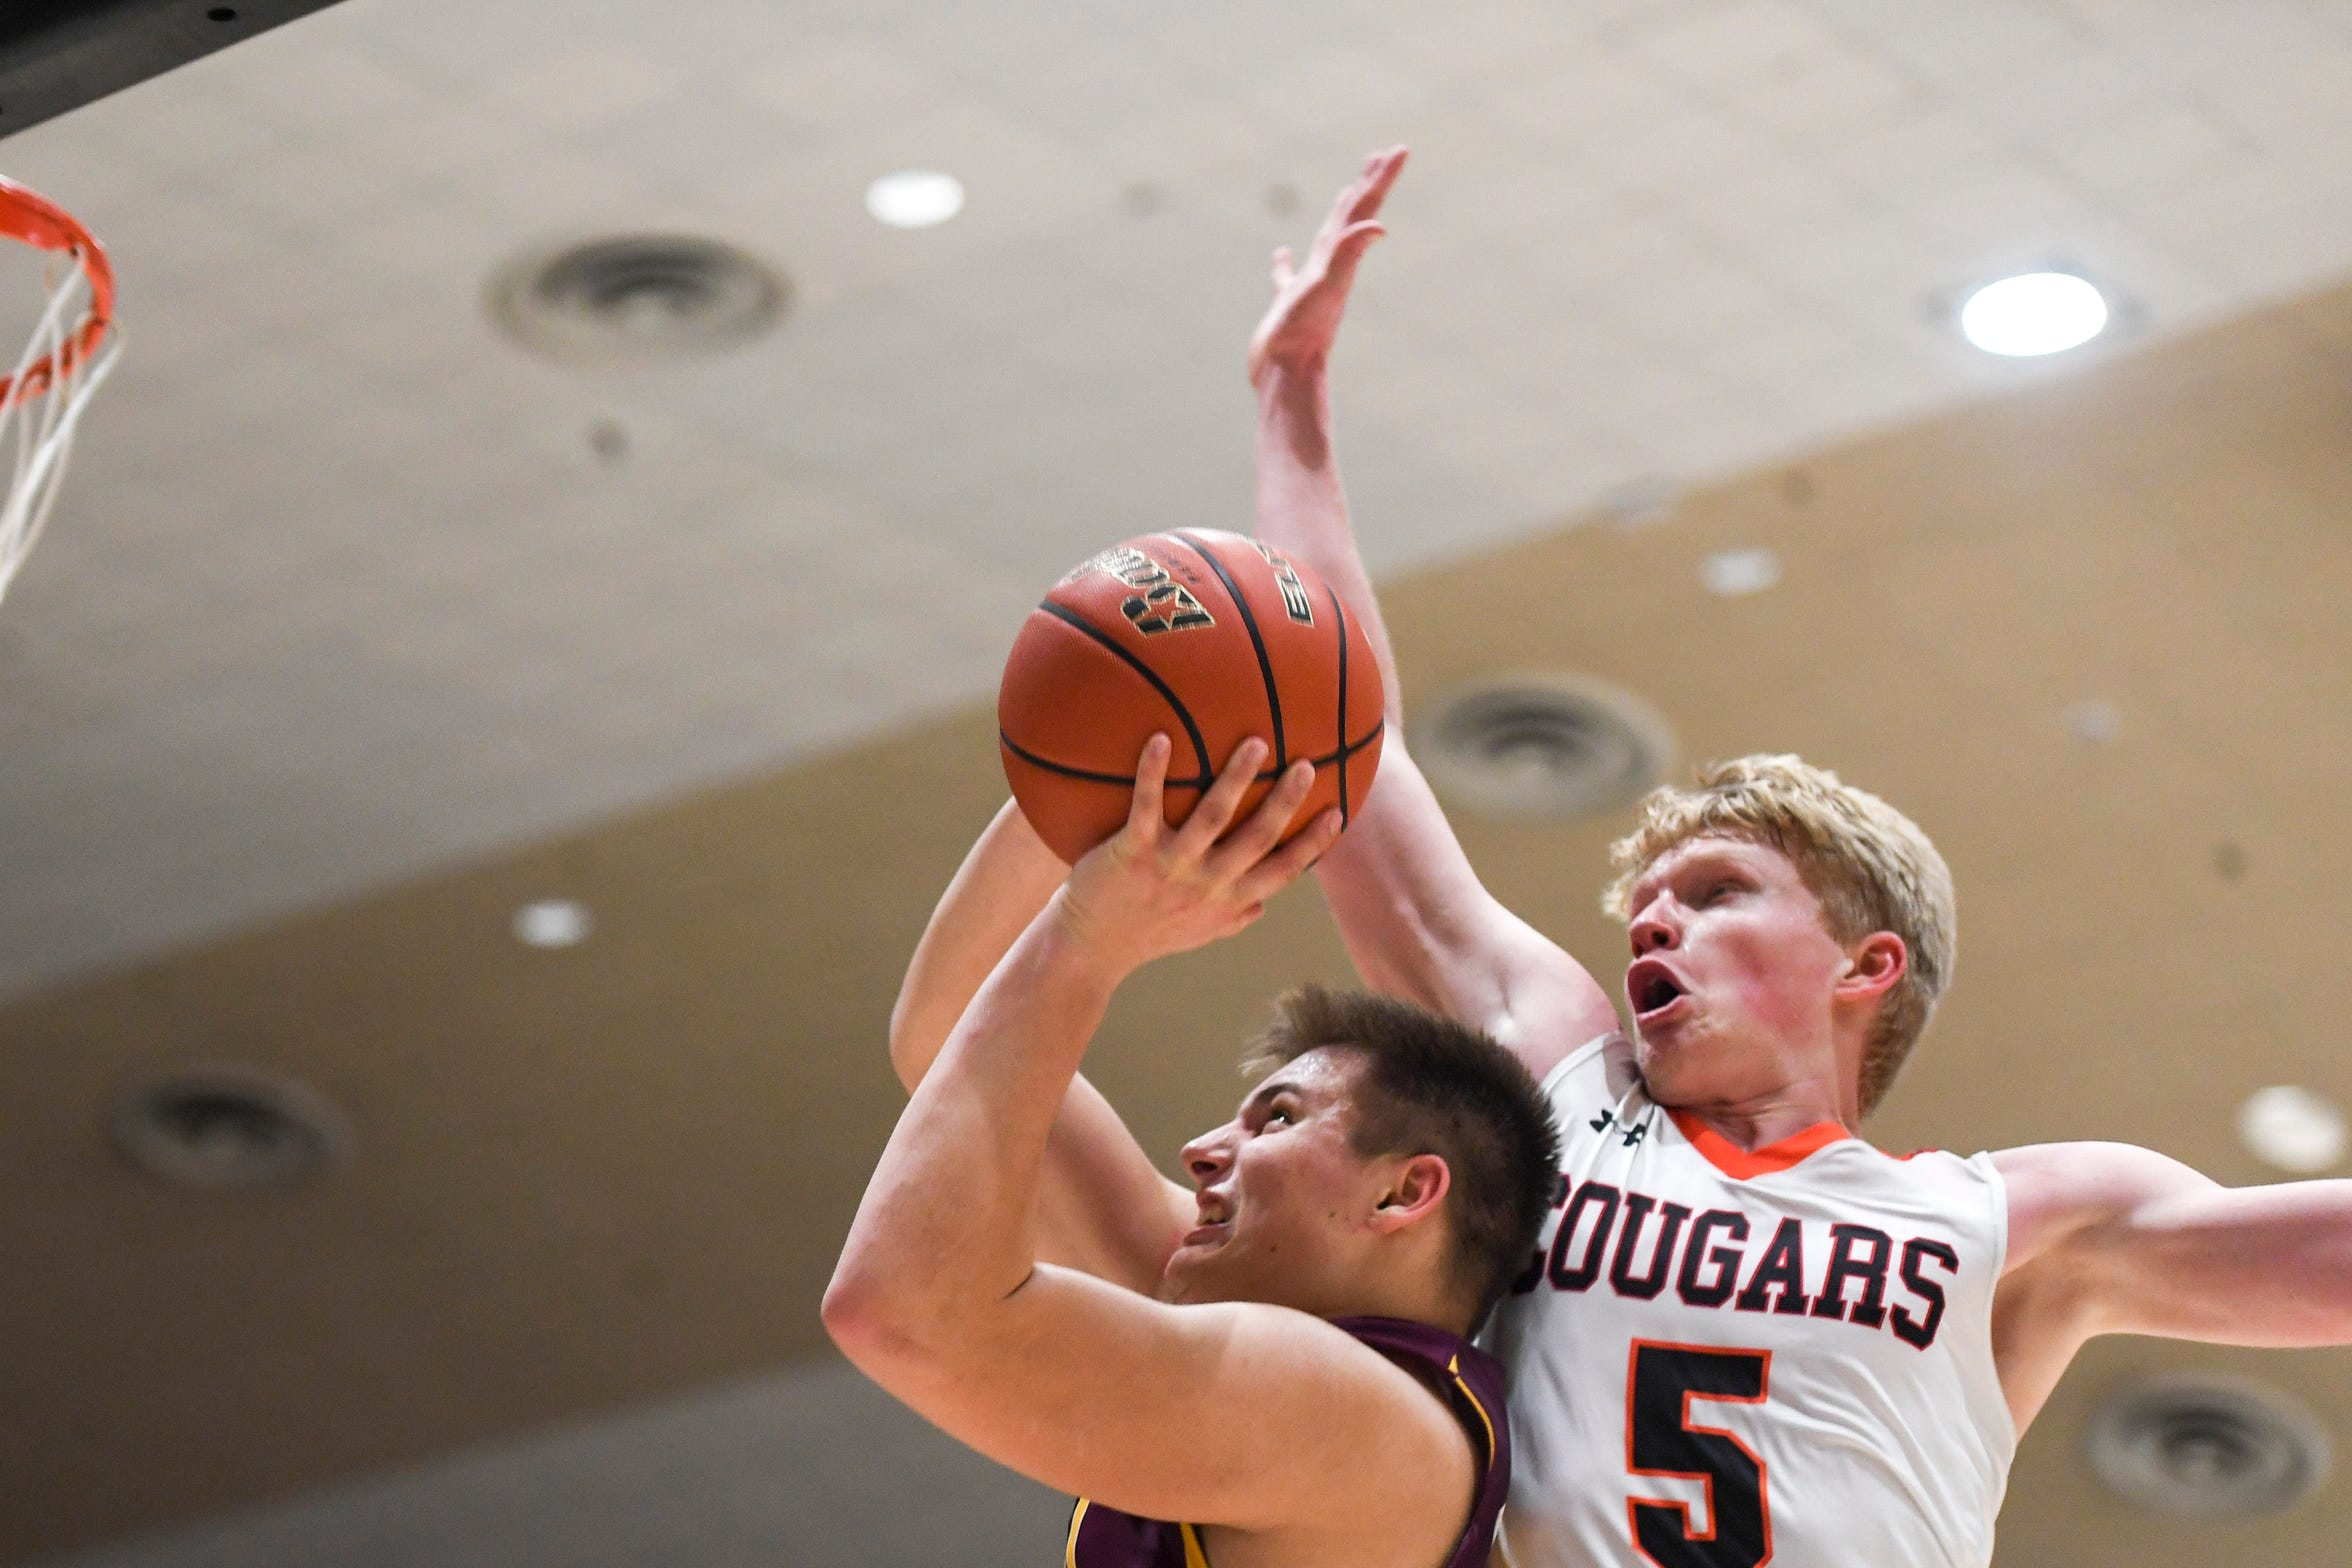 De Smet's Kalen Garry (15) goes up for a basket during the game against Viborg-Hurley on Saturday, Jan. 25, 2020 at the Corn Palace in Mitchell, S.D.